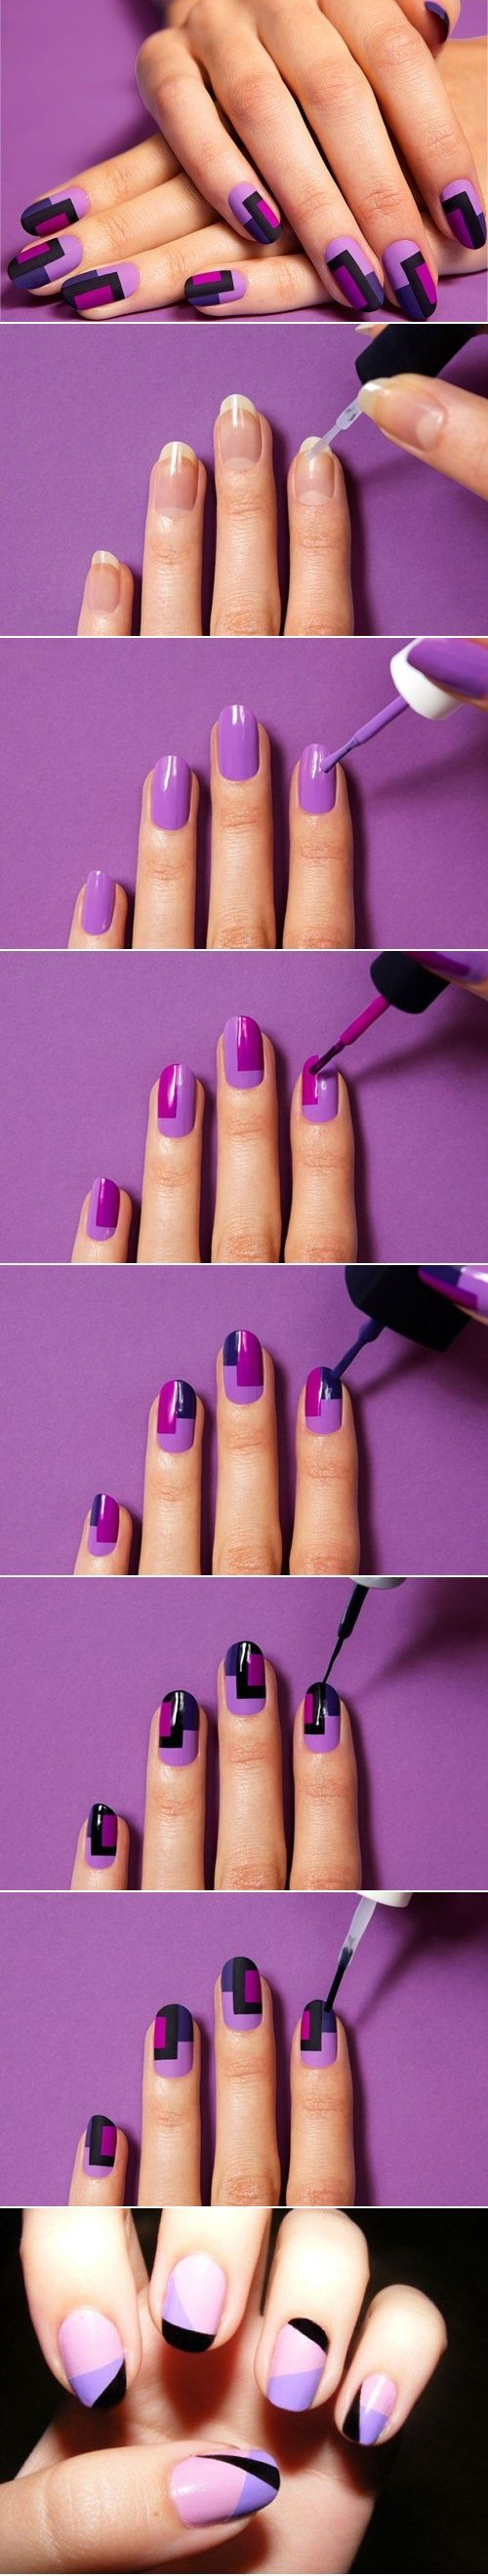 DIY Colorful Fashion Nails Tutorial | Nail art <3 | Pinterest ...